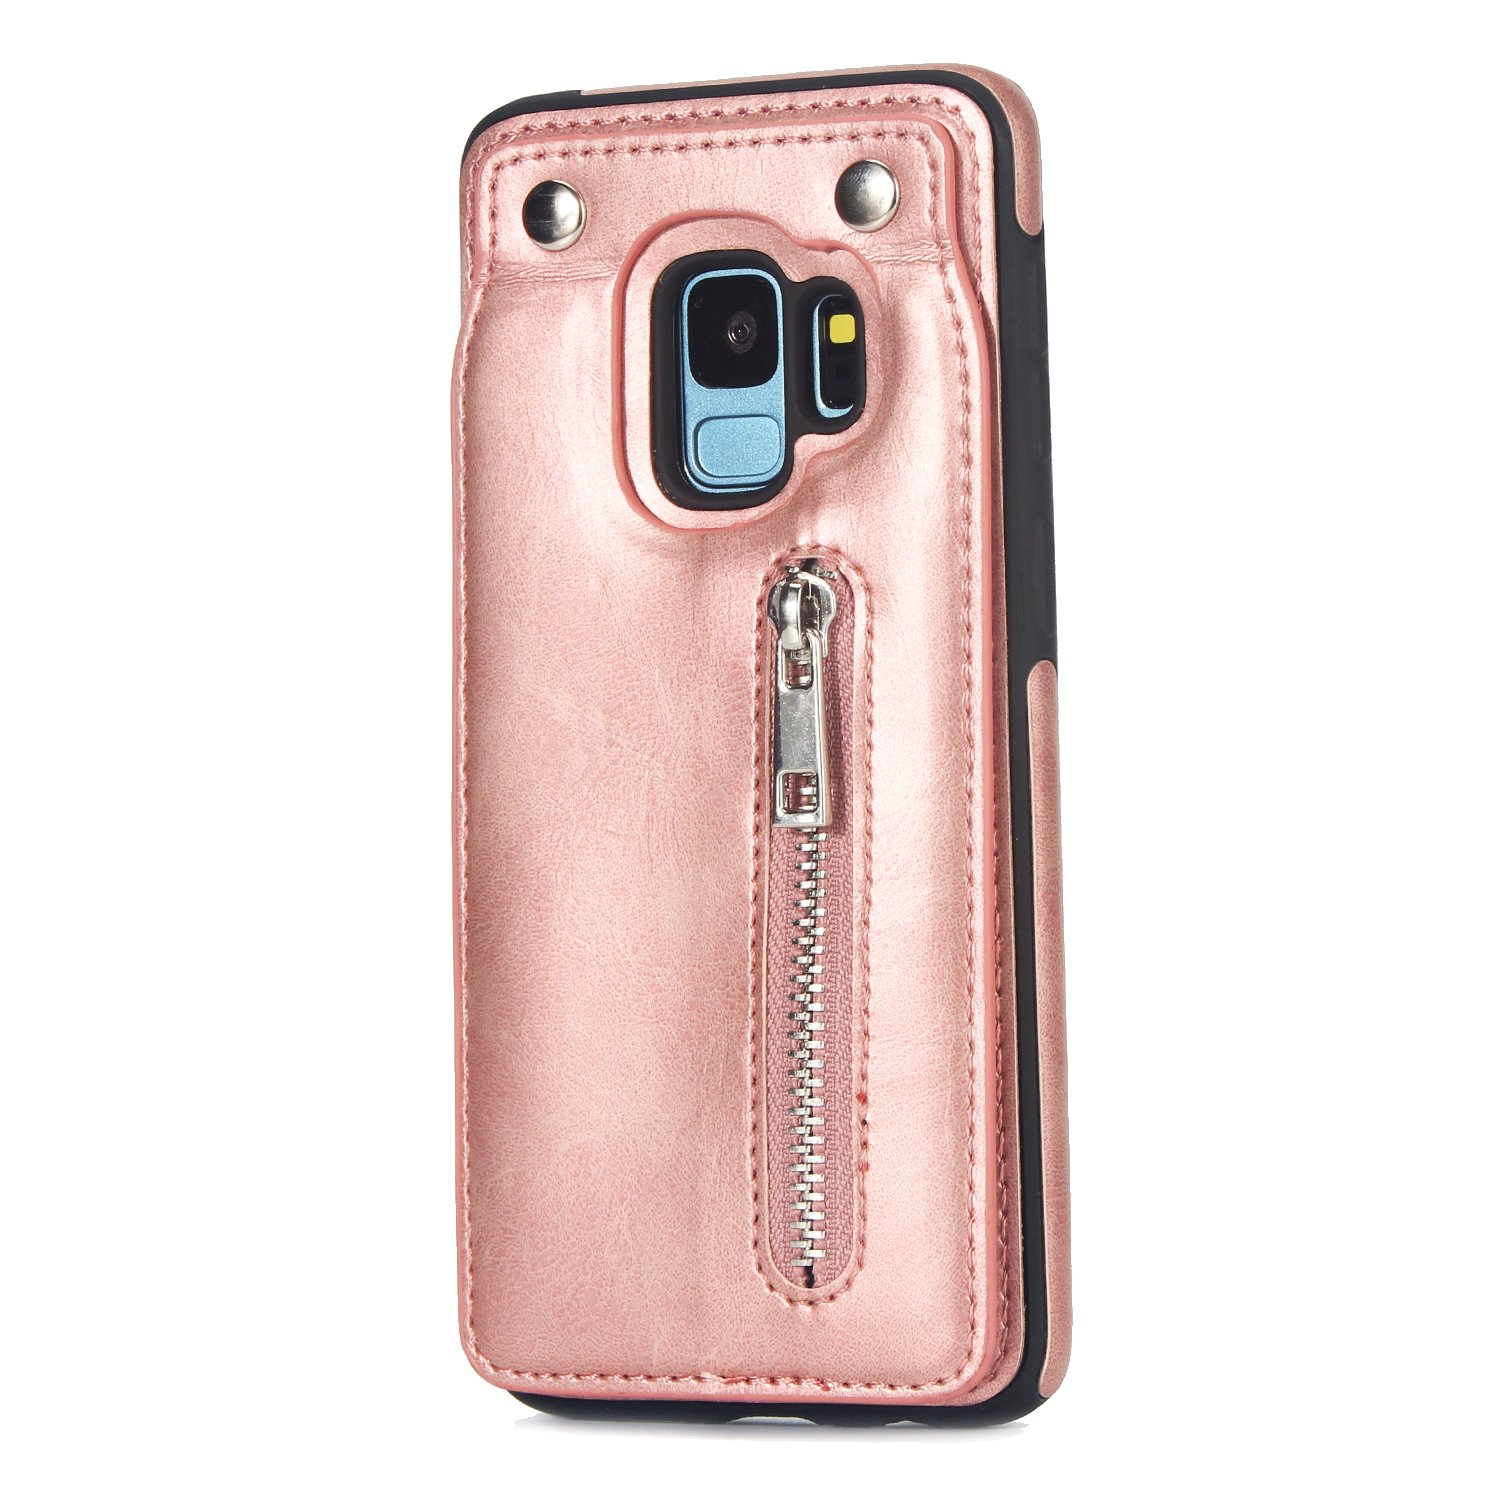 Case for Galaxy S9 Plus Flip Case Premium PU Leather Wallet Cover with Card Holder Money Pocket Durable Shockproof Protective Cover for Galaxy S9 Plus,Rose gold by ikasus